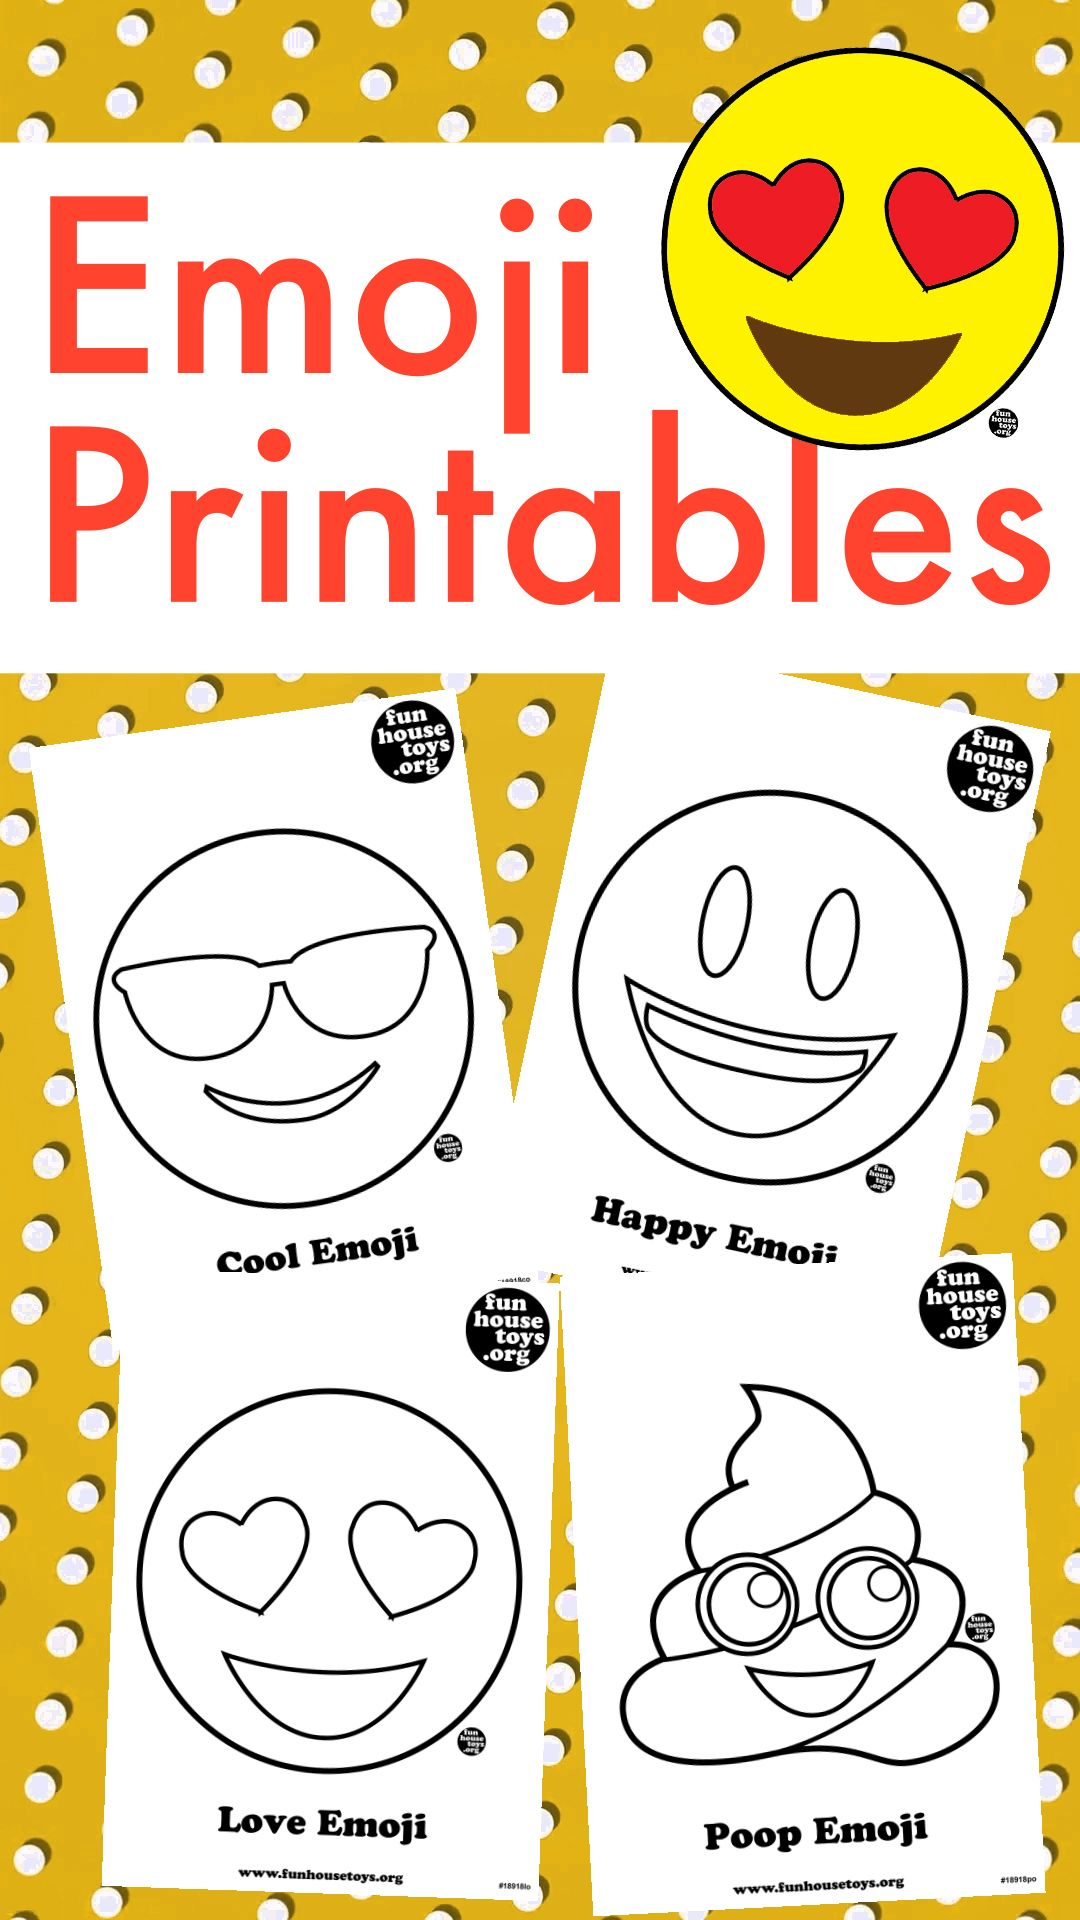 Get This Printable As Well As Many More Amazing Printables